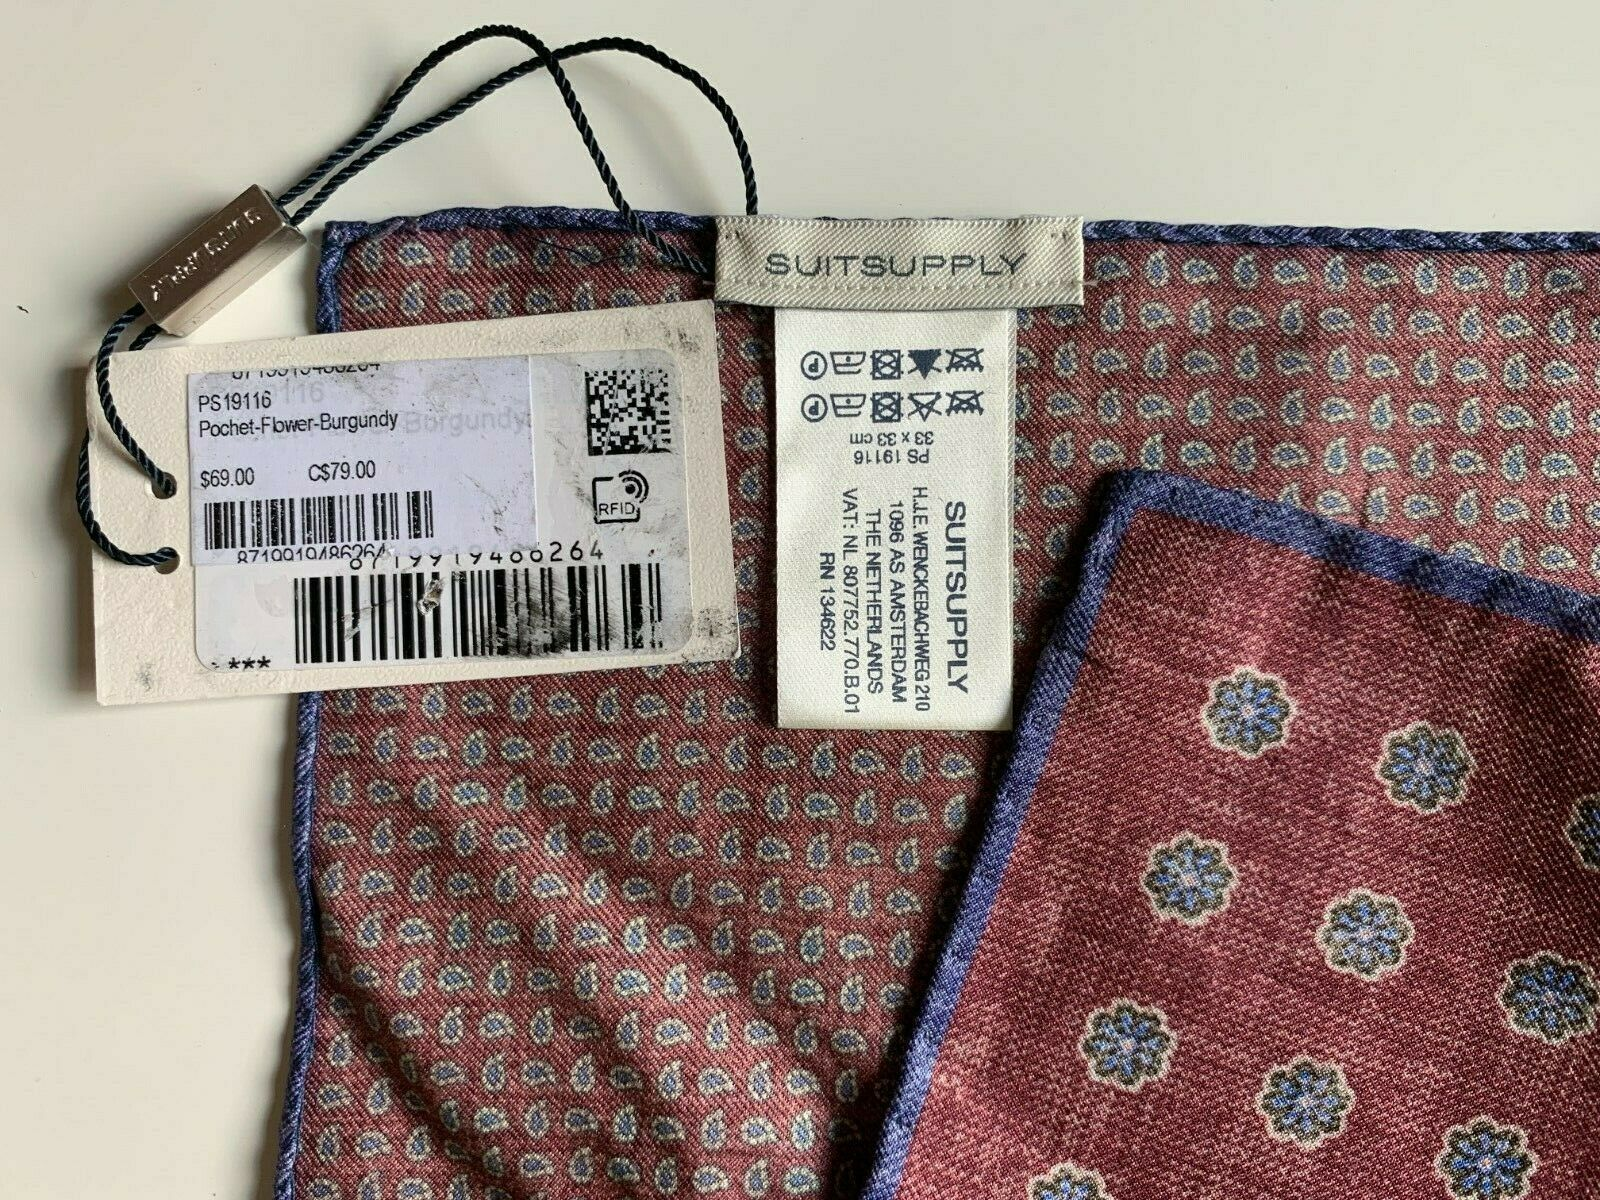 NWT Suitsupply Pocket Square Flower Pattern Burgundy Double Sided (PS19116)